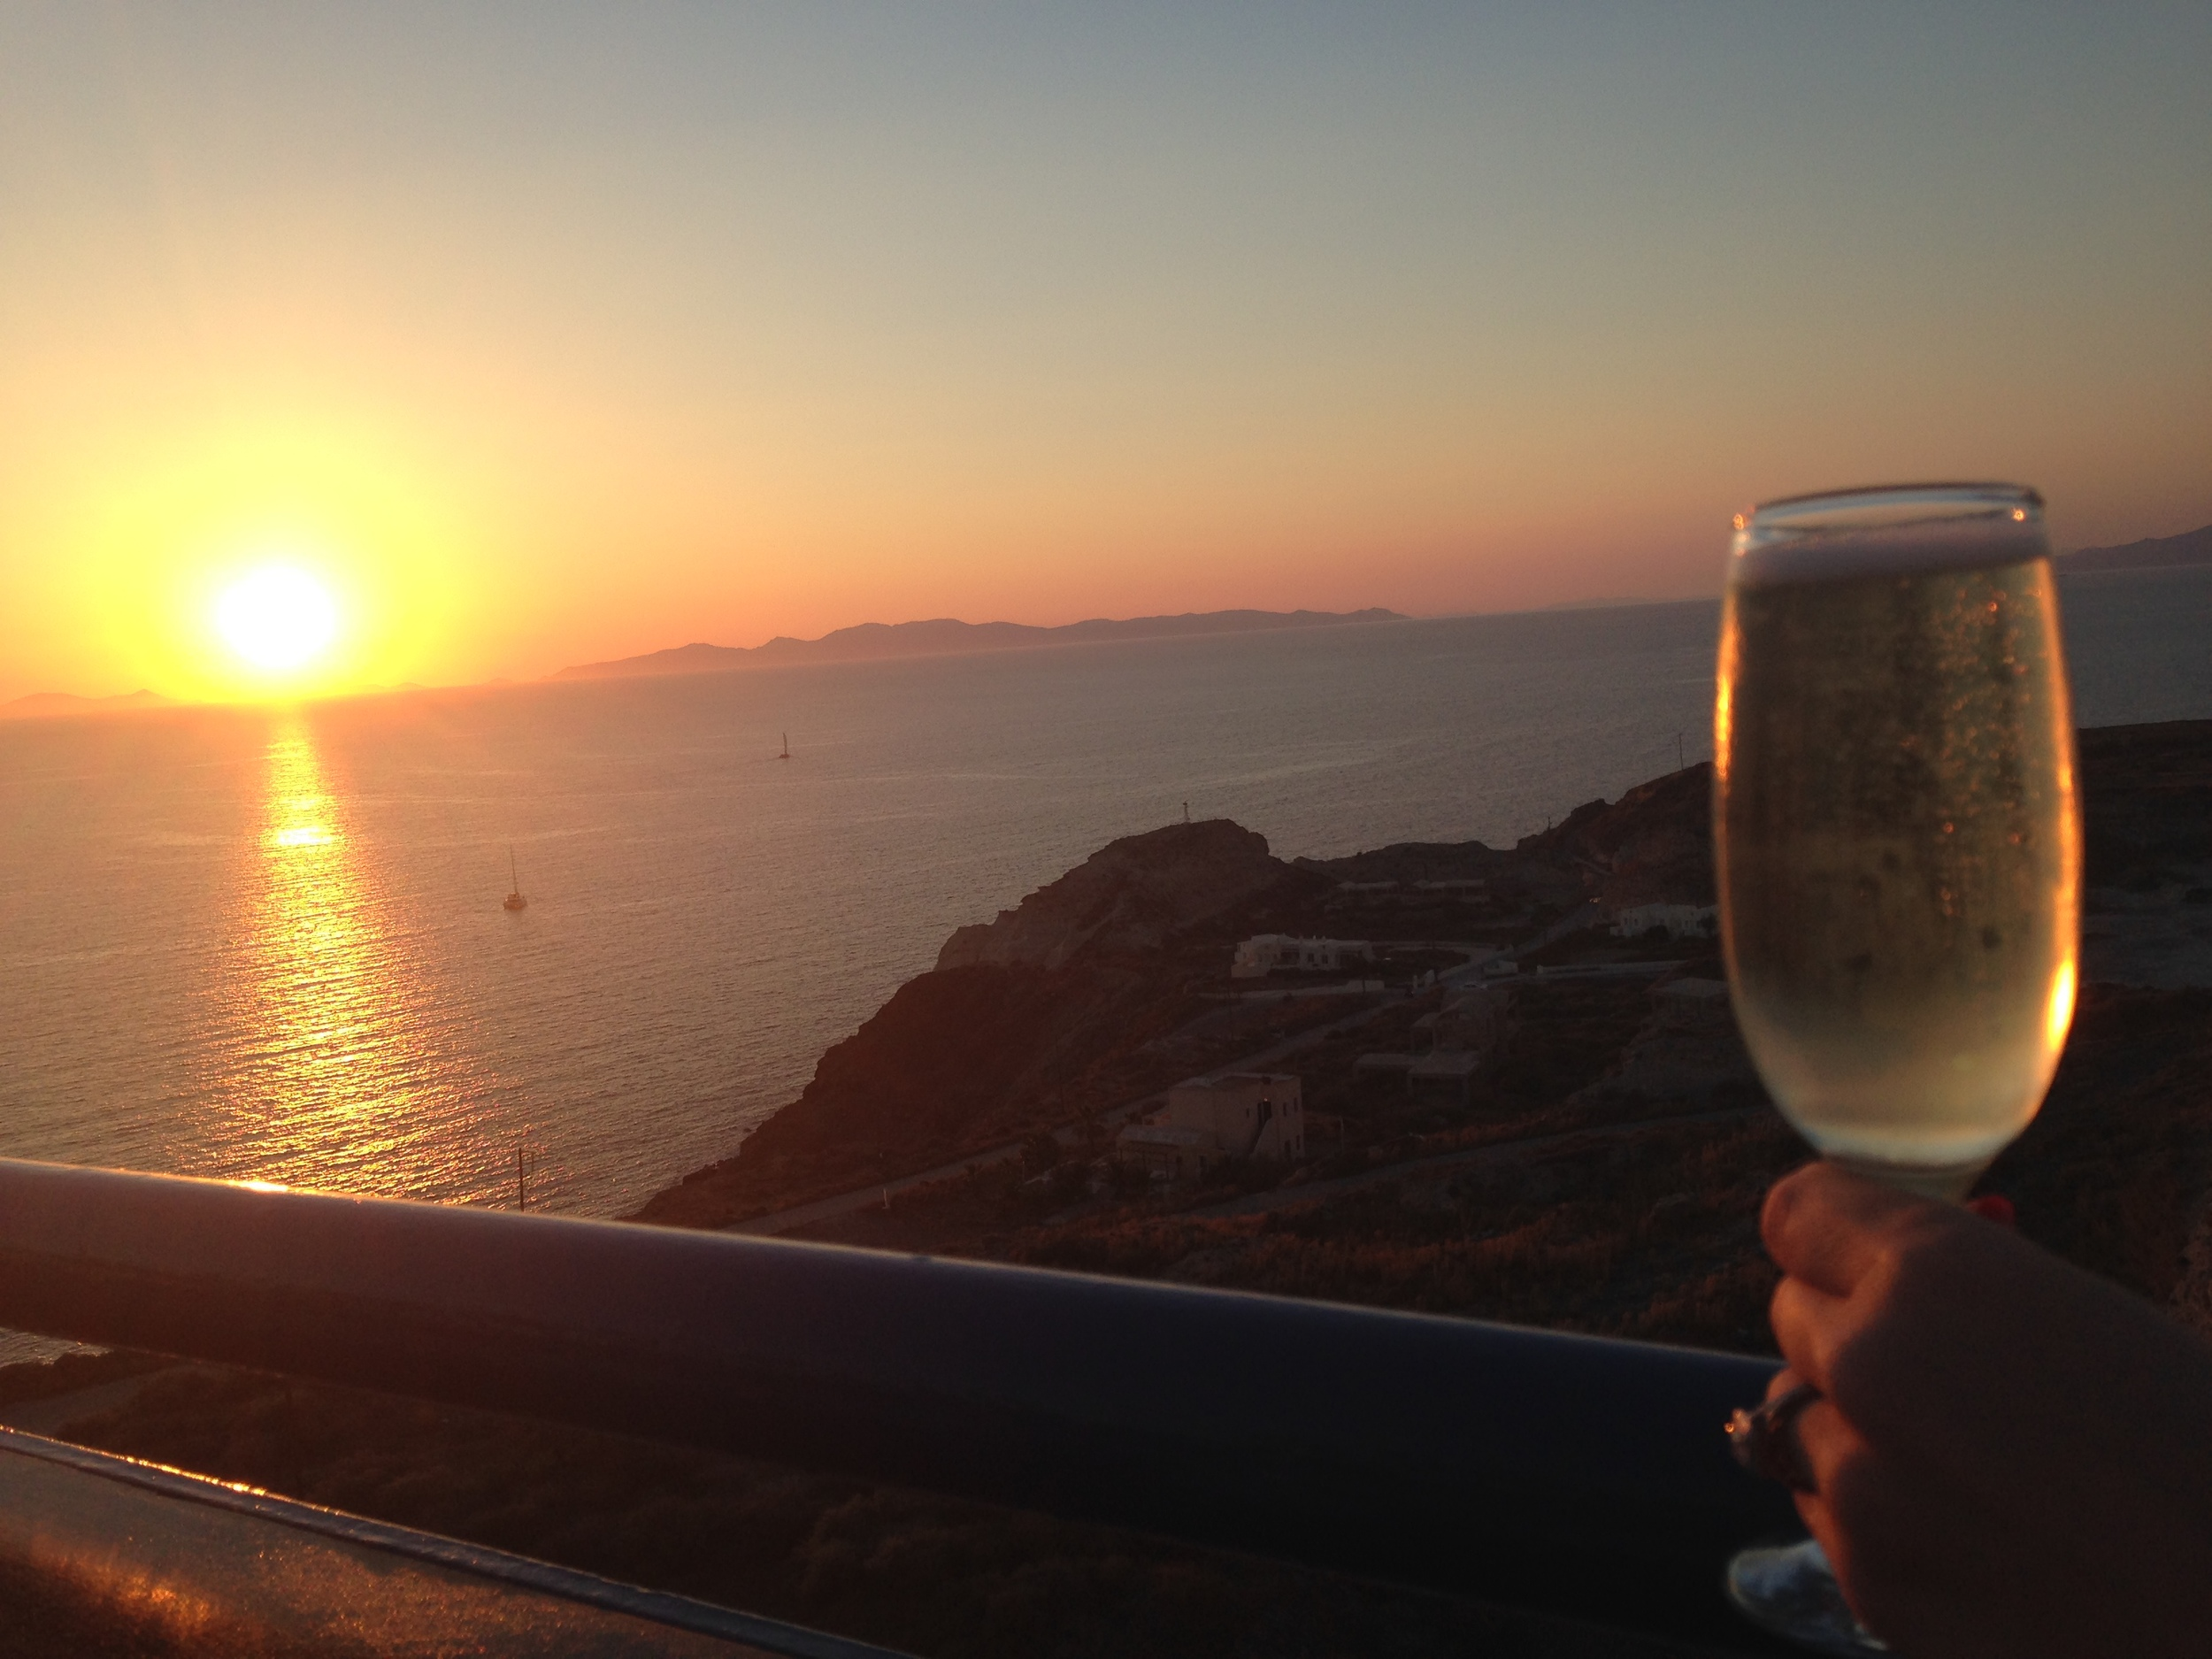 Enjoy the sunset in Oia, the northern point of the island of Santorini